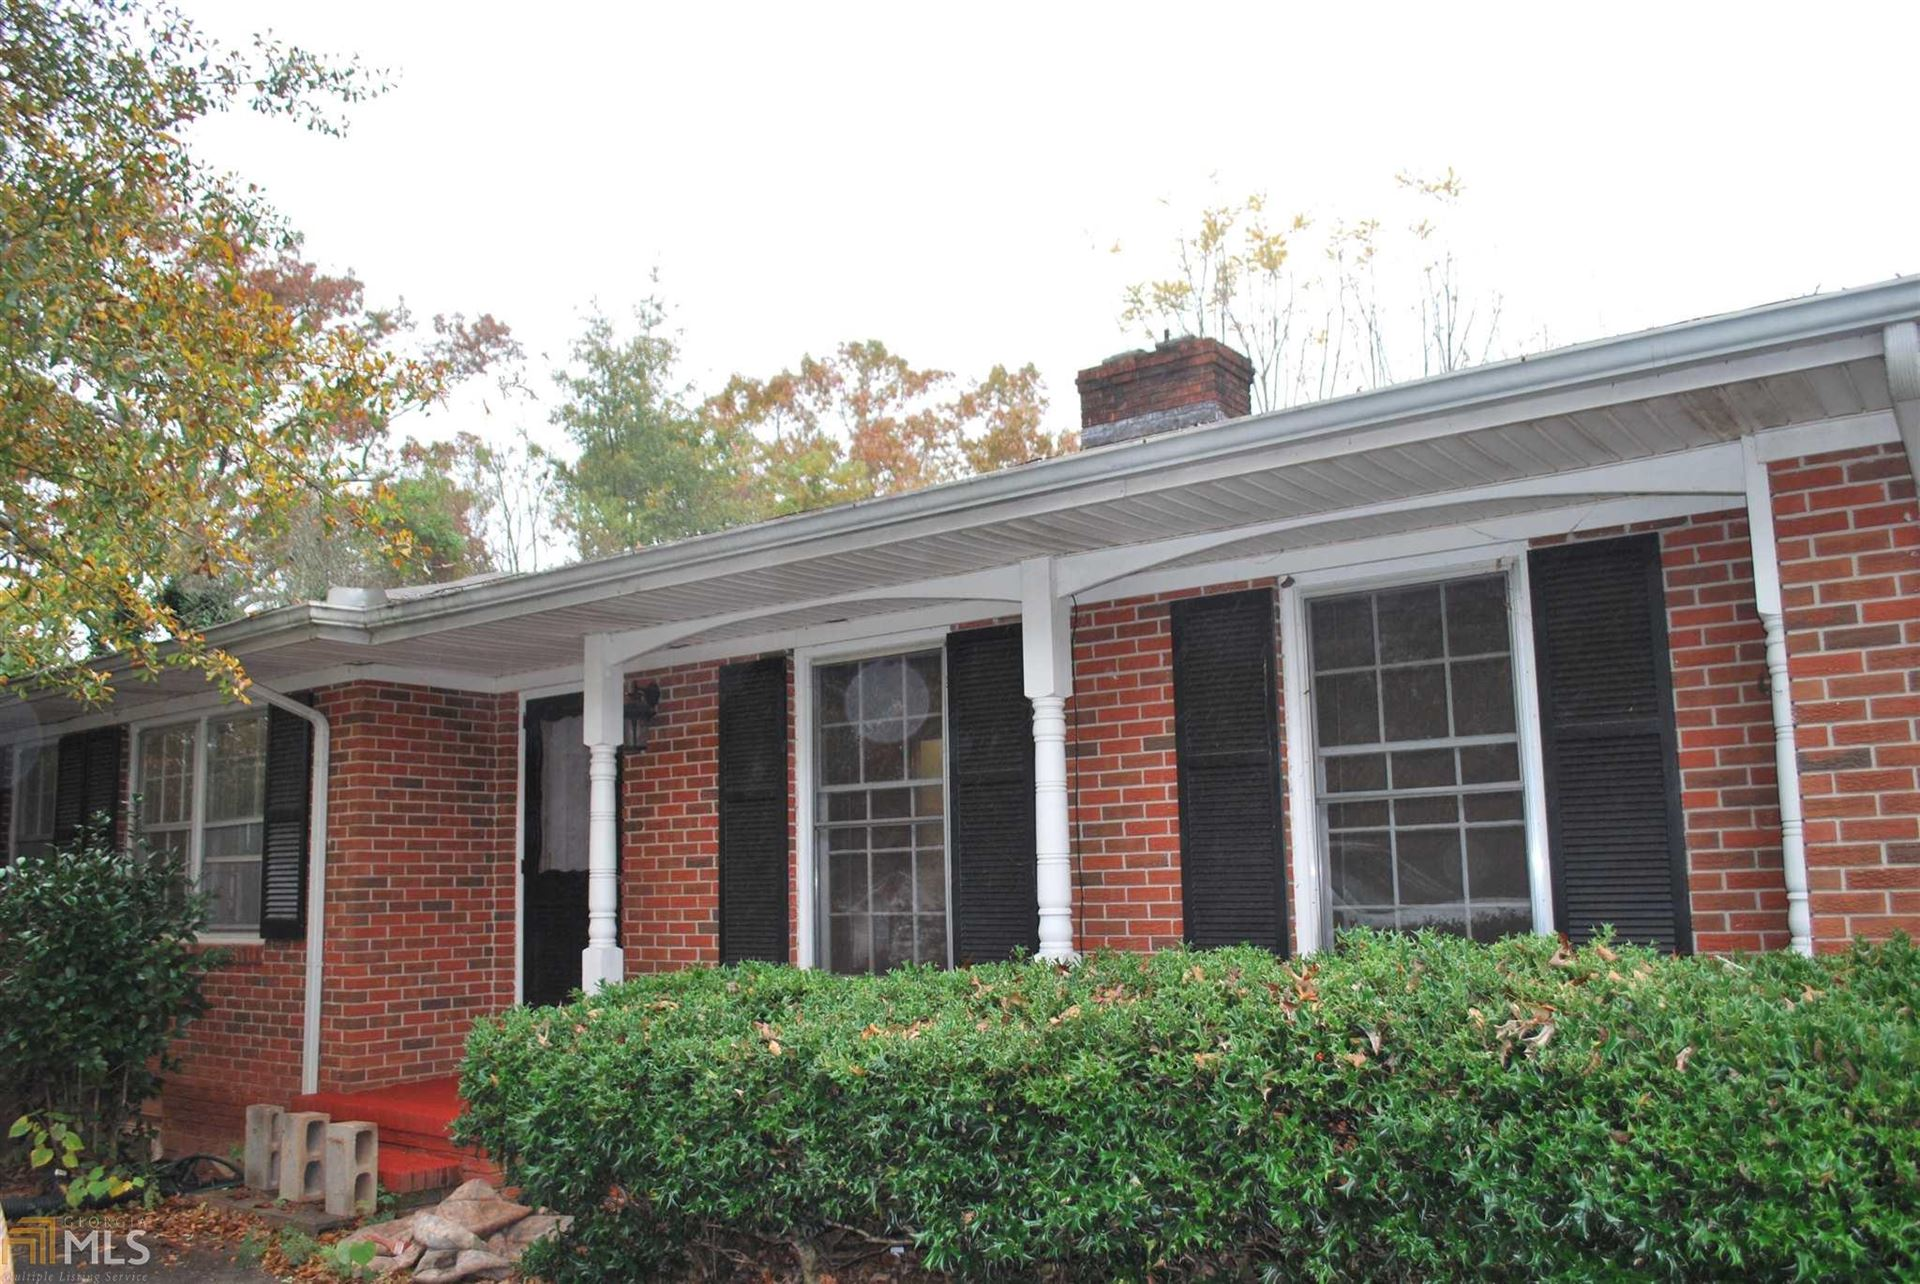 358 North Hall Rd, Dahlonega, GA 30533 - MLS#: 8889621